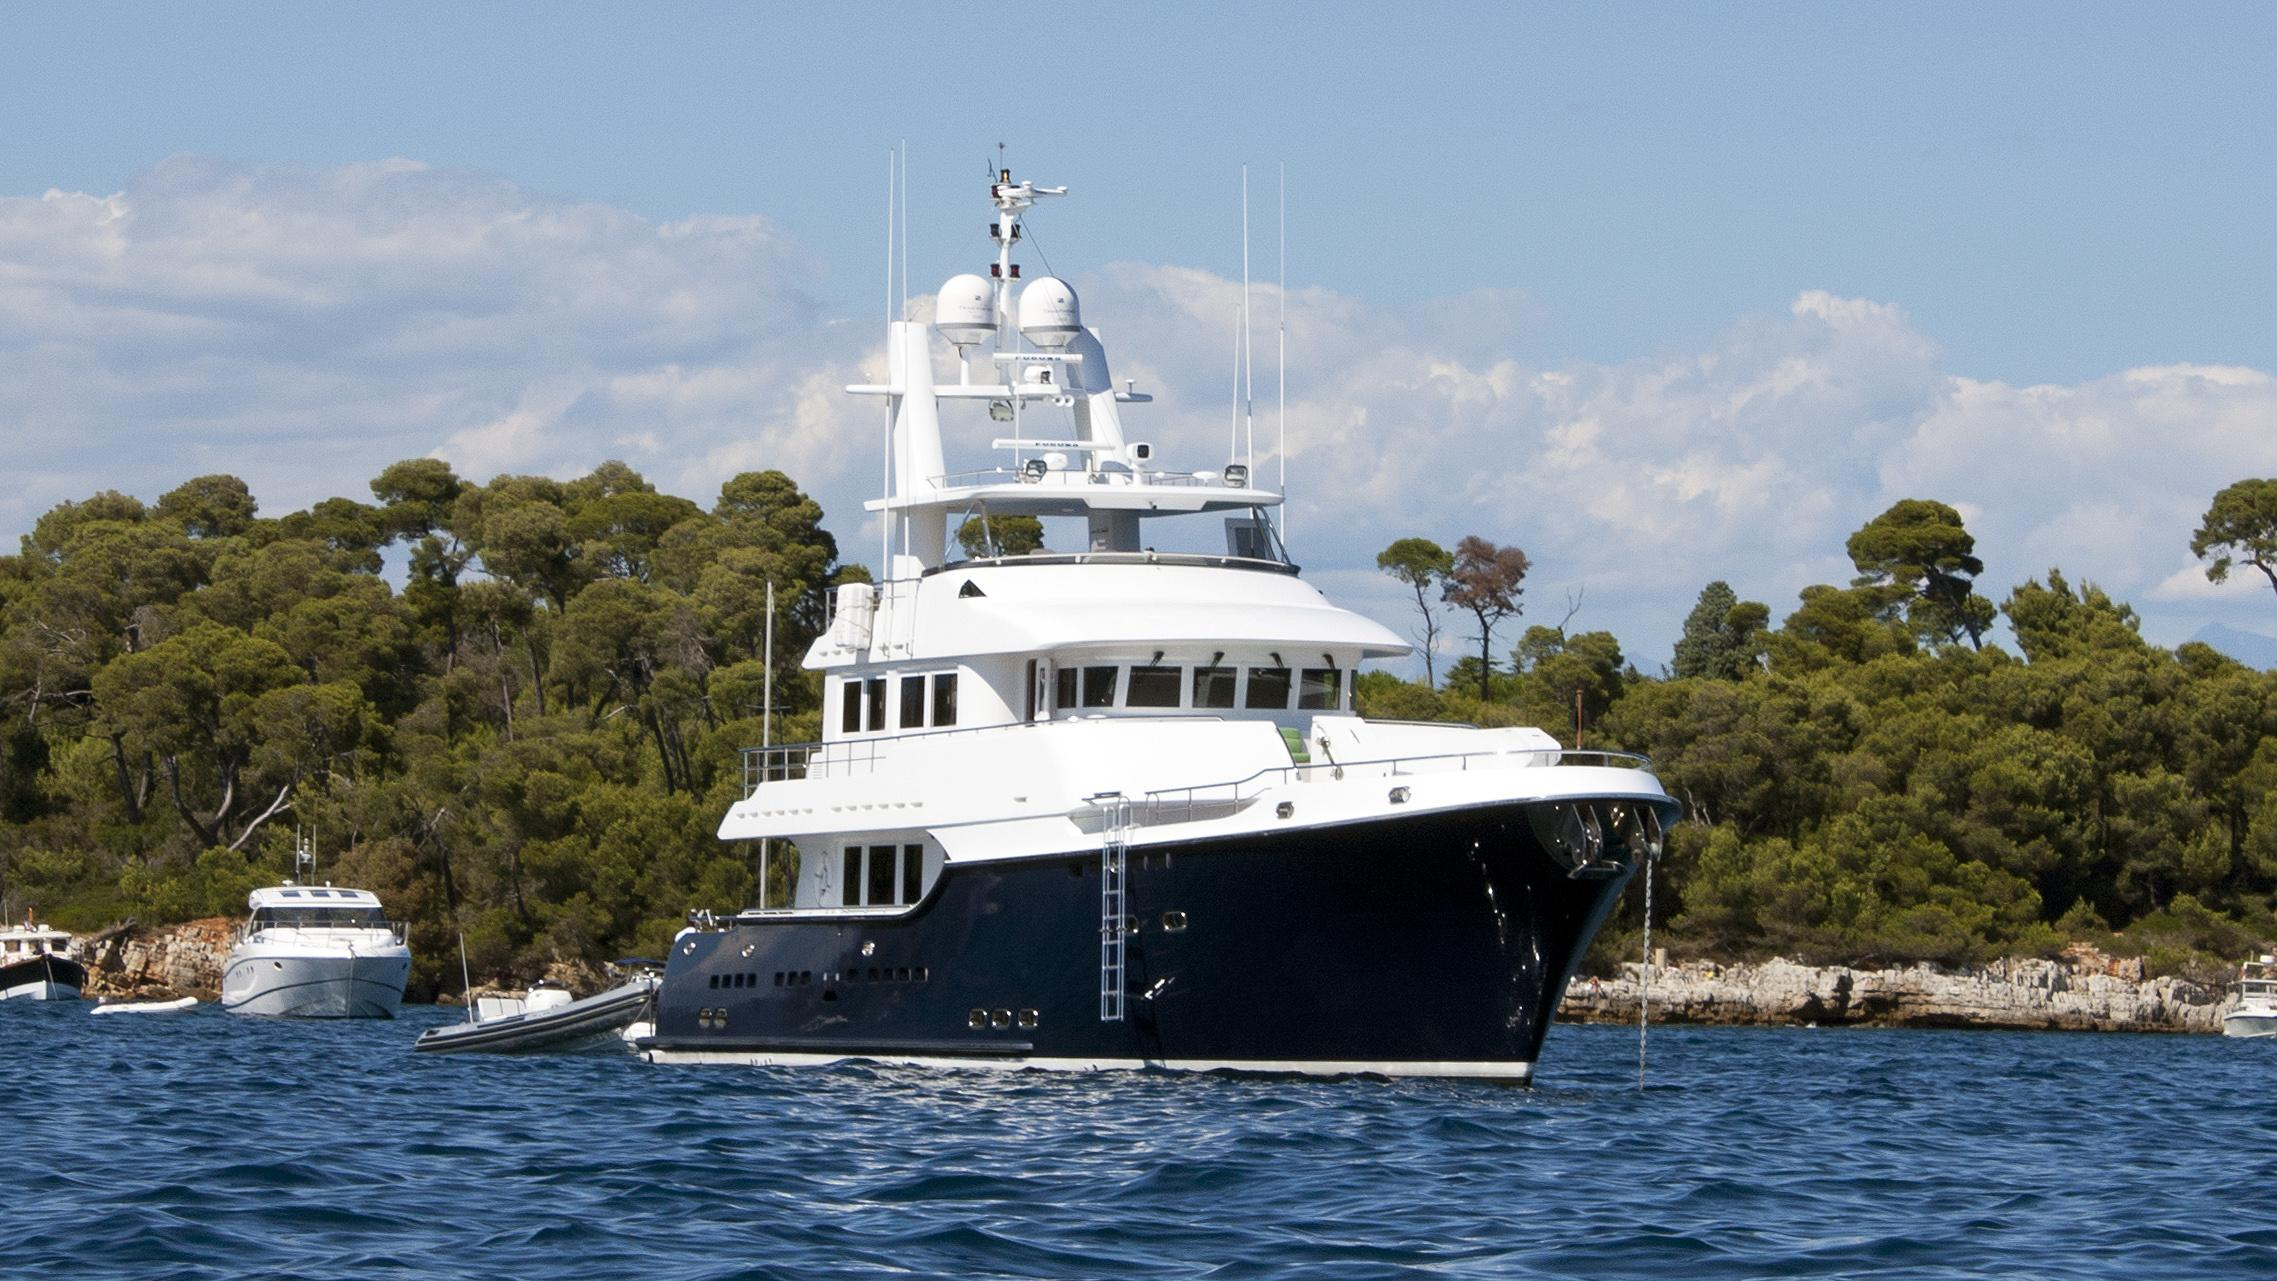 sol-and-sons-motor-yacht-nordhavn-86-2008-27m-half-profile